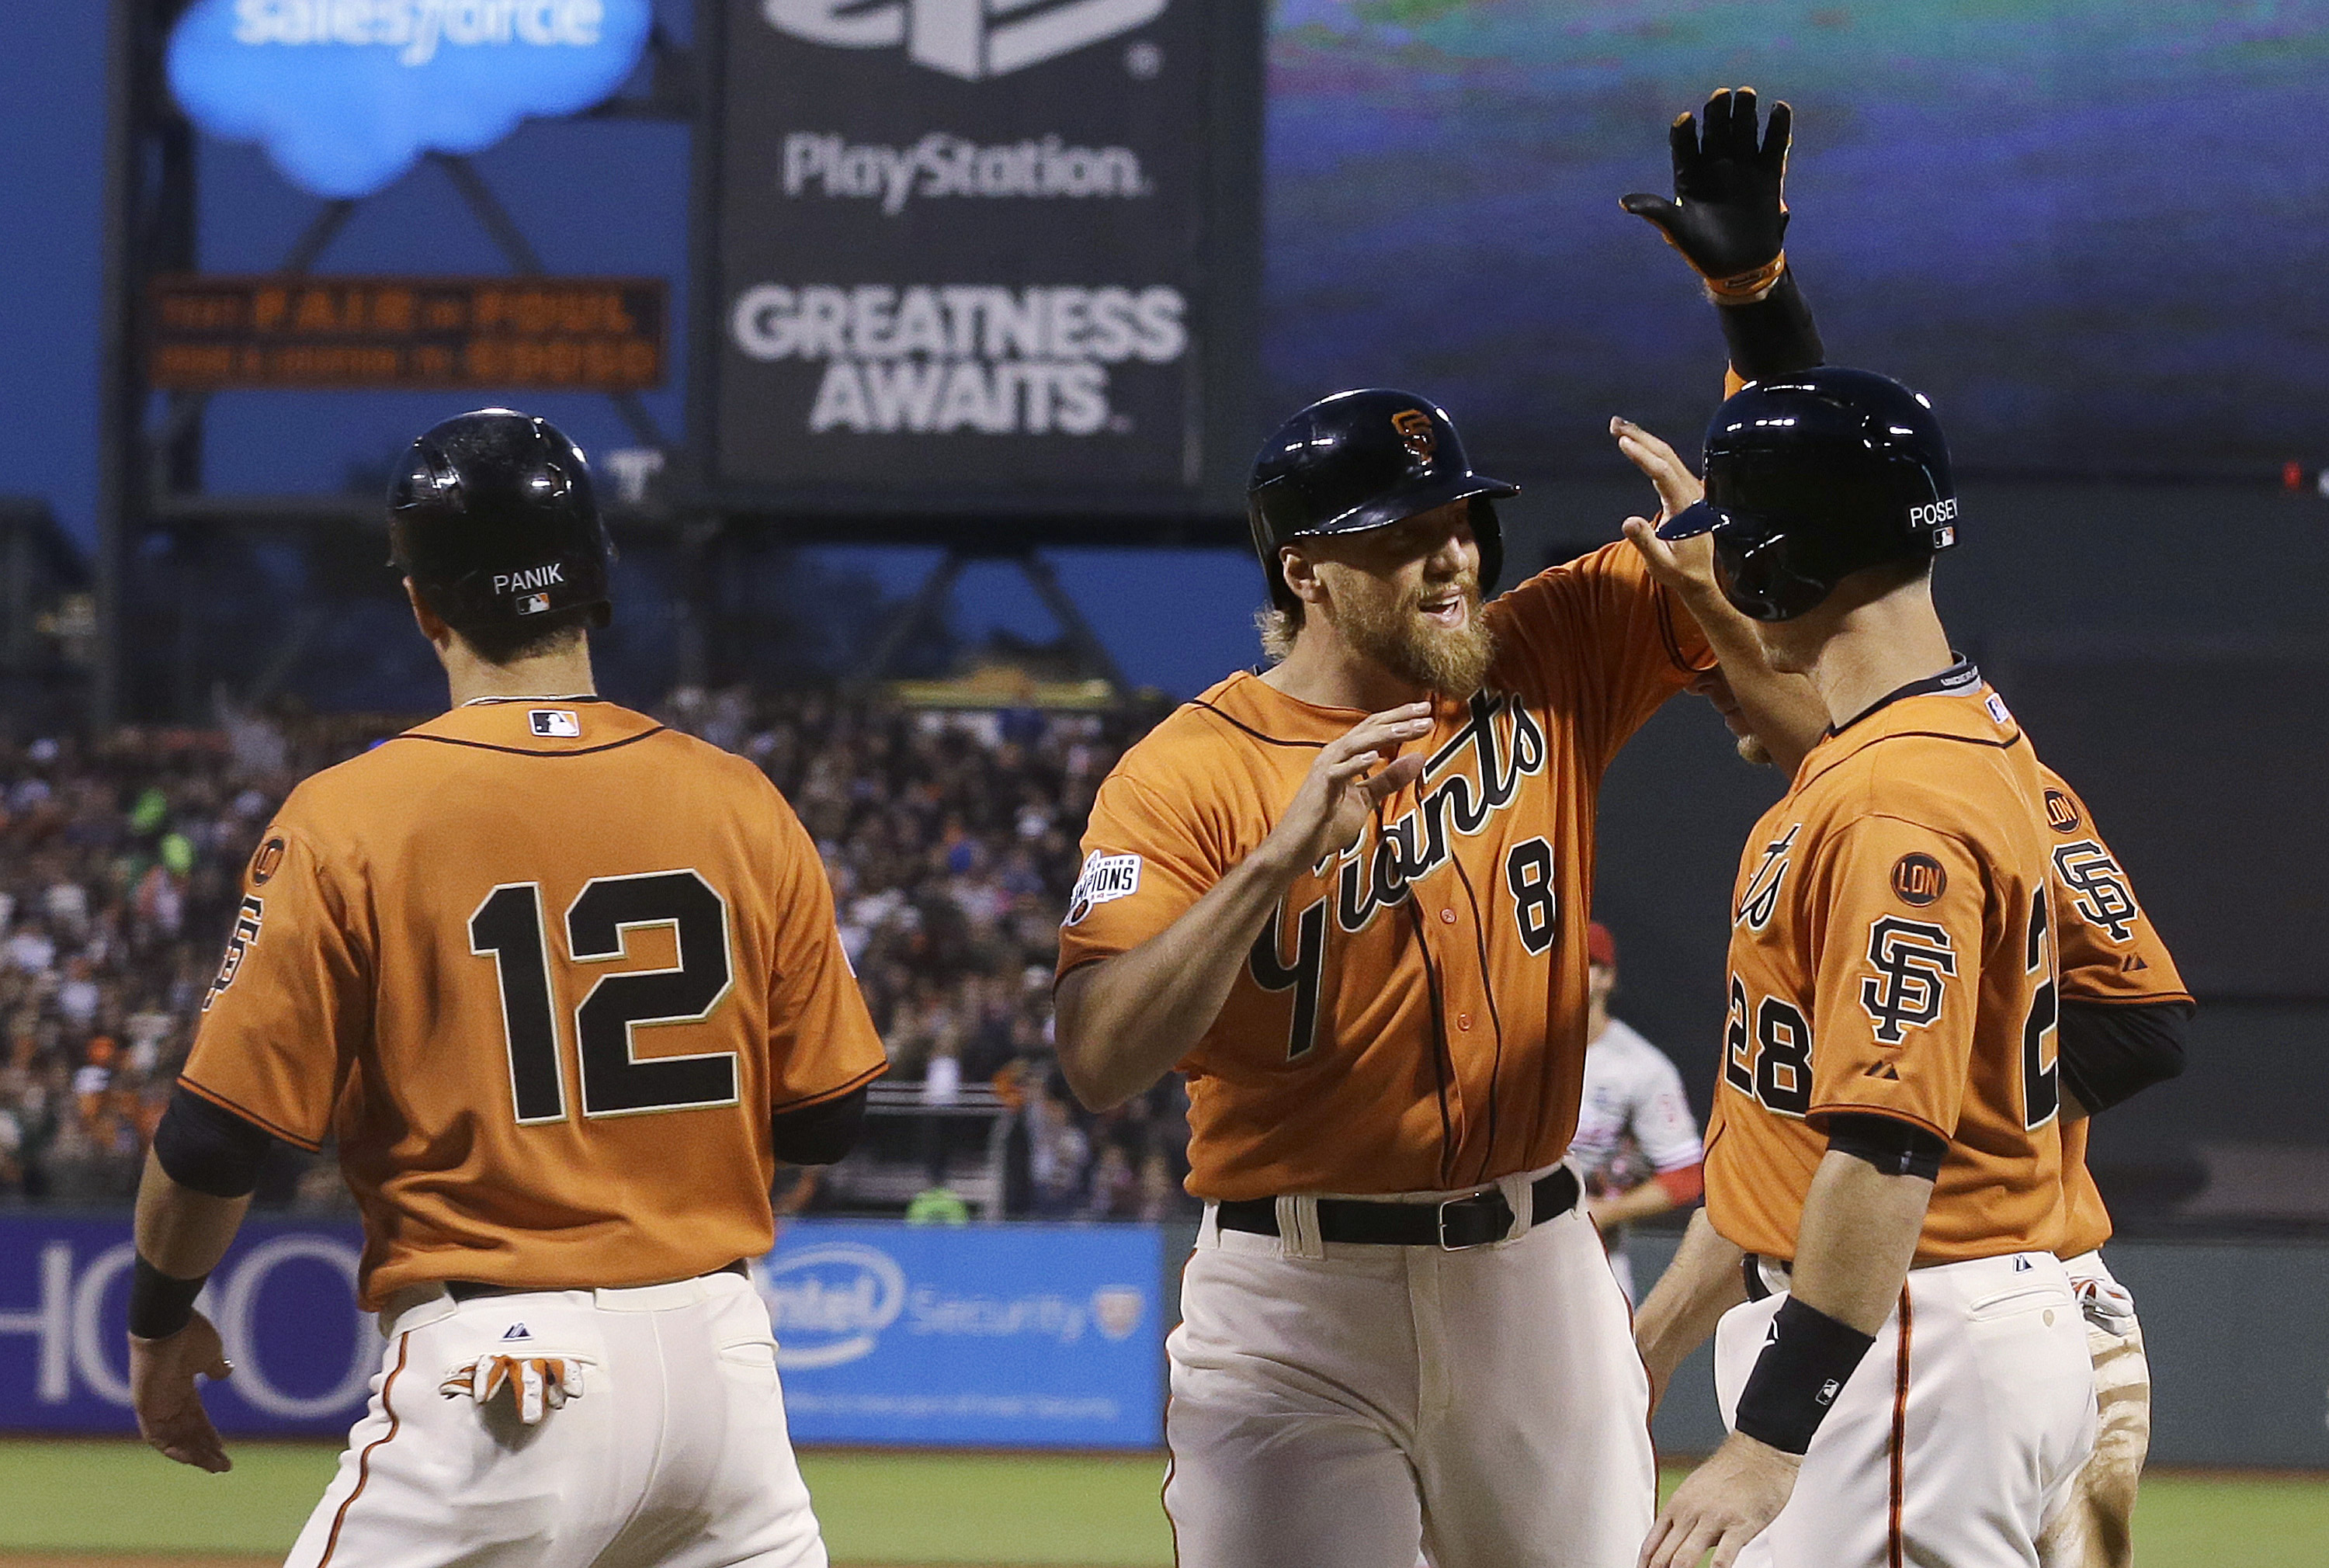 San Francisco Giants' Hunter Pence (8) is congratulated,after hitting a grand slam off Philadelphia Phillies pitcher Cole Hamels, by Joe Panik (12), Buster Posey (28) and Matt Duffy, hidden, during the fourth inning of a baseball game in San Francisco, Fr